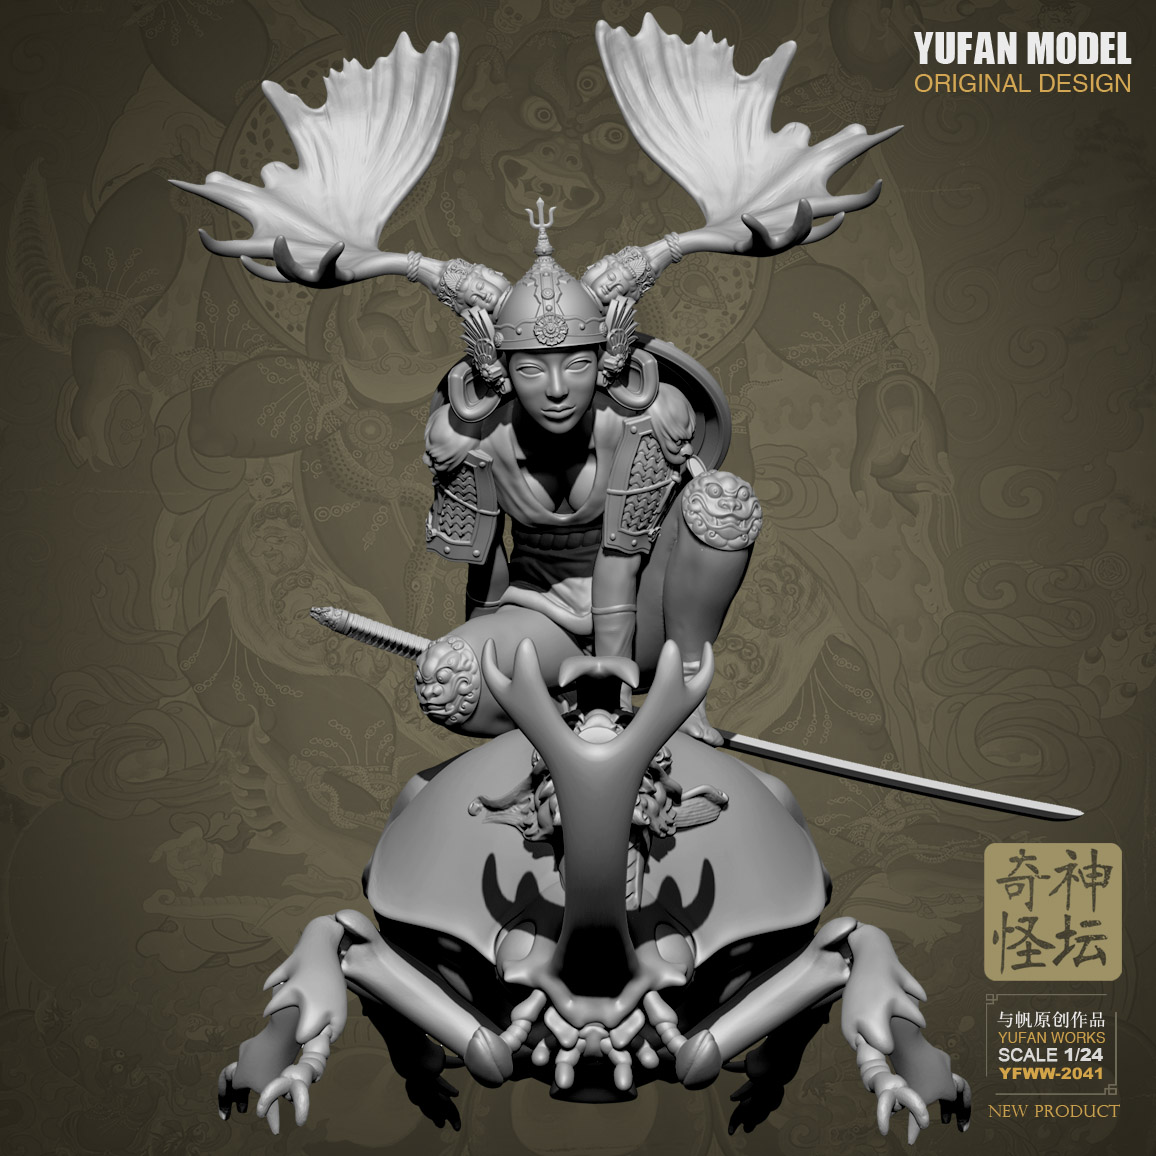 1/24 YUFAN Model resin kit resin odd fantasy altar JieShan women, soldiers were YFWW-2041